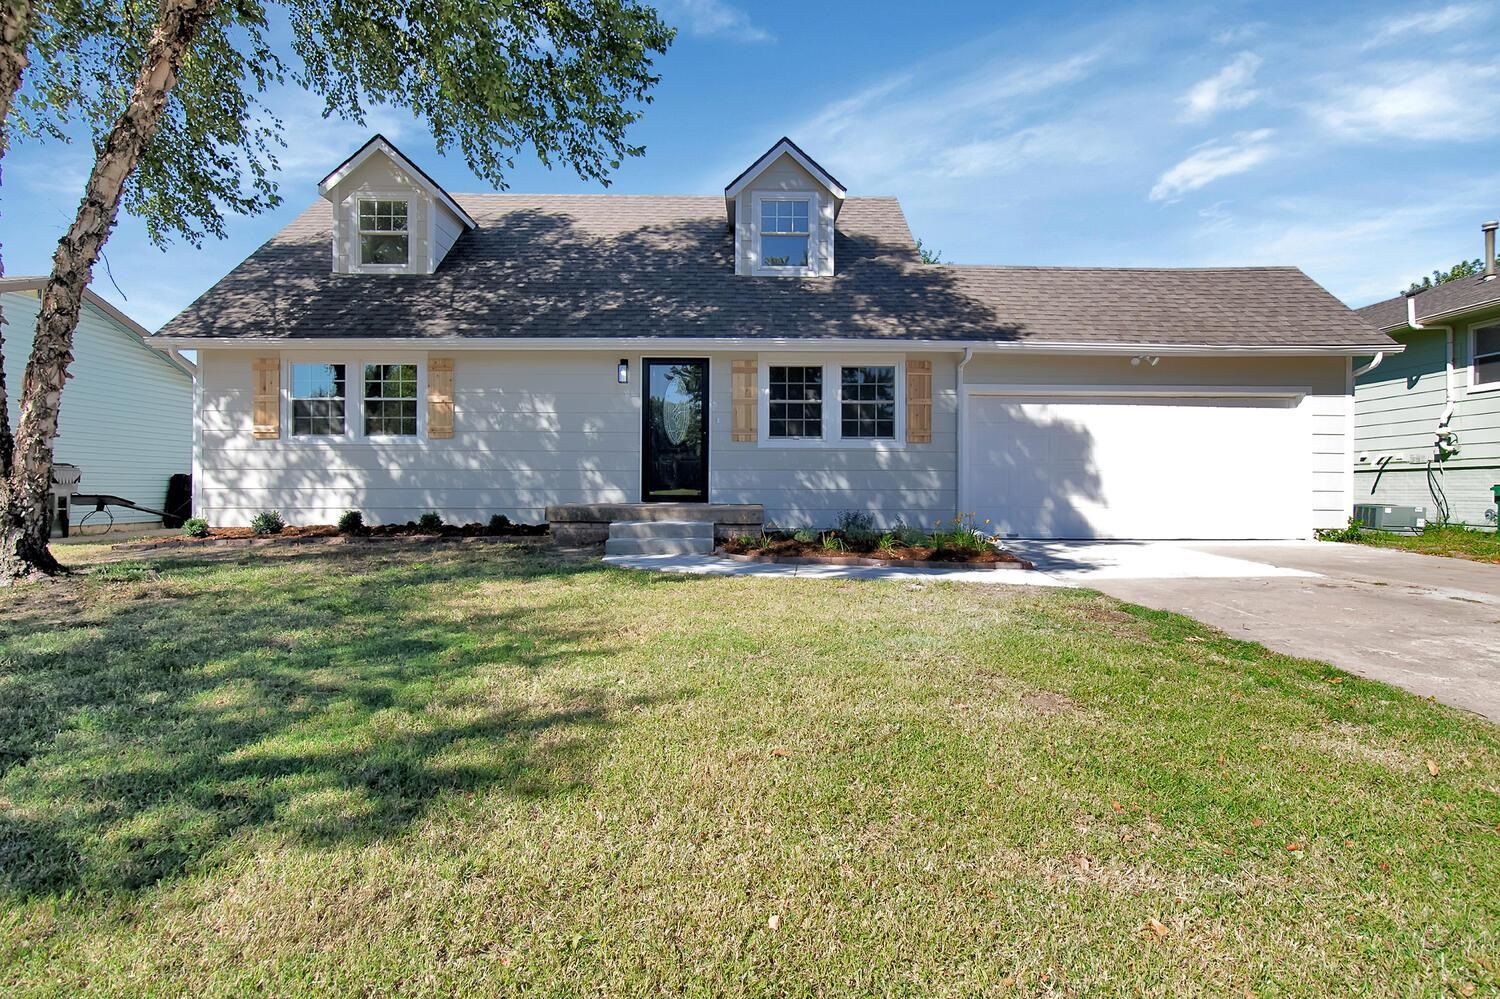 New New New! Don't miss out on this totally remodeled 4 bedroom 3 bath home located on a quiet stree